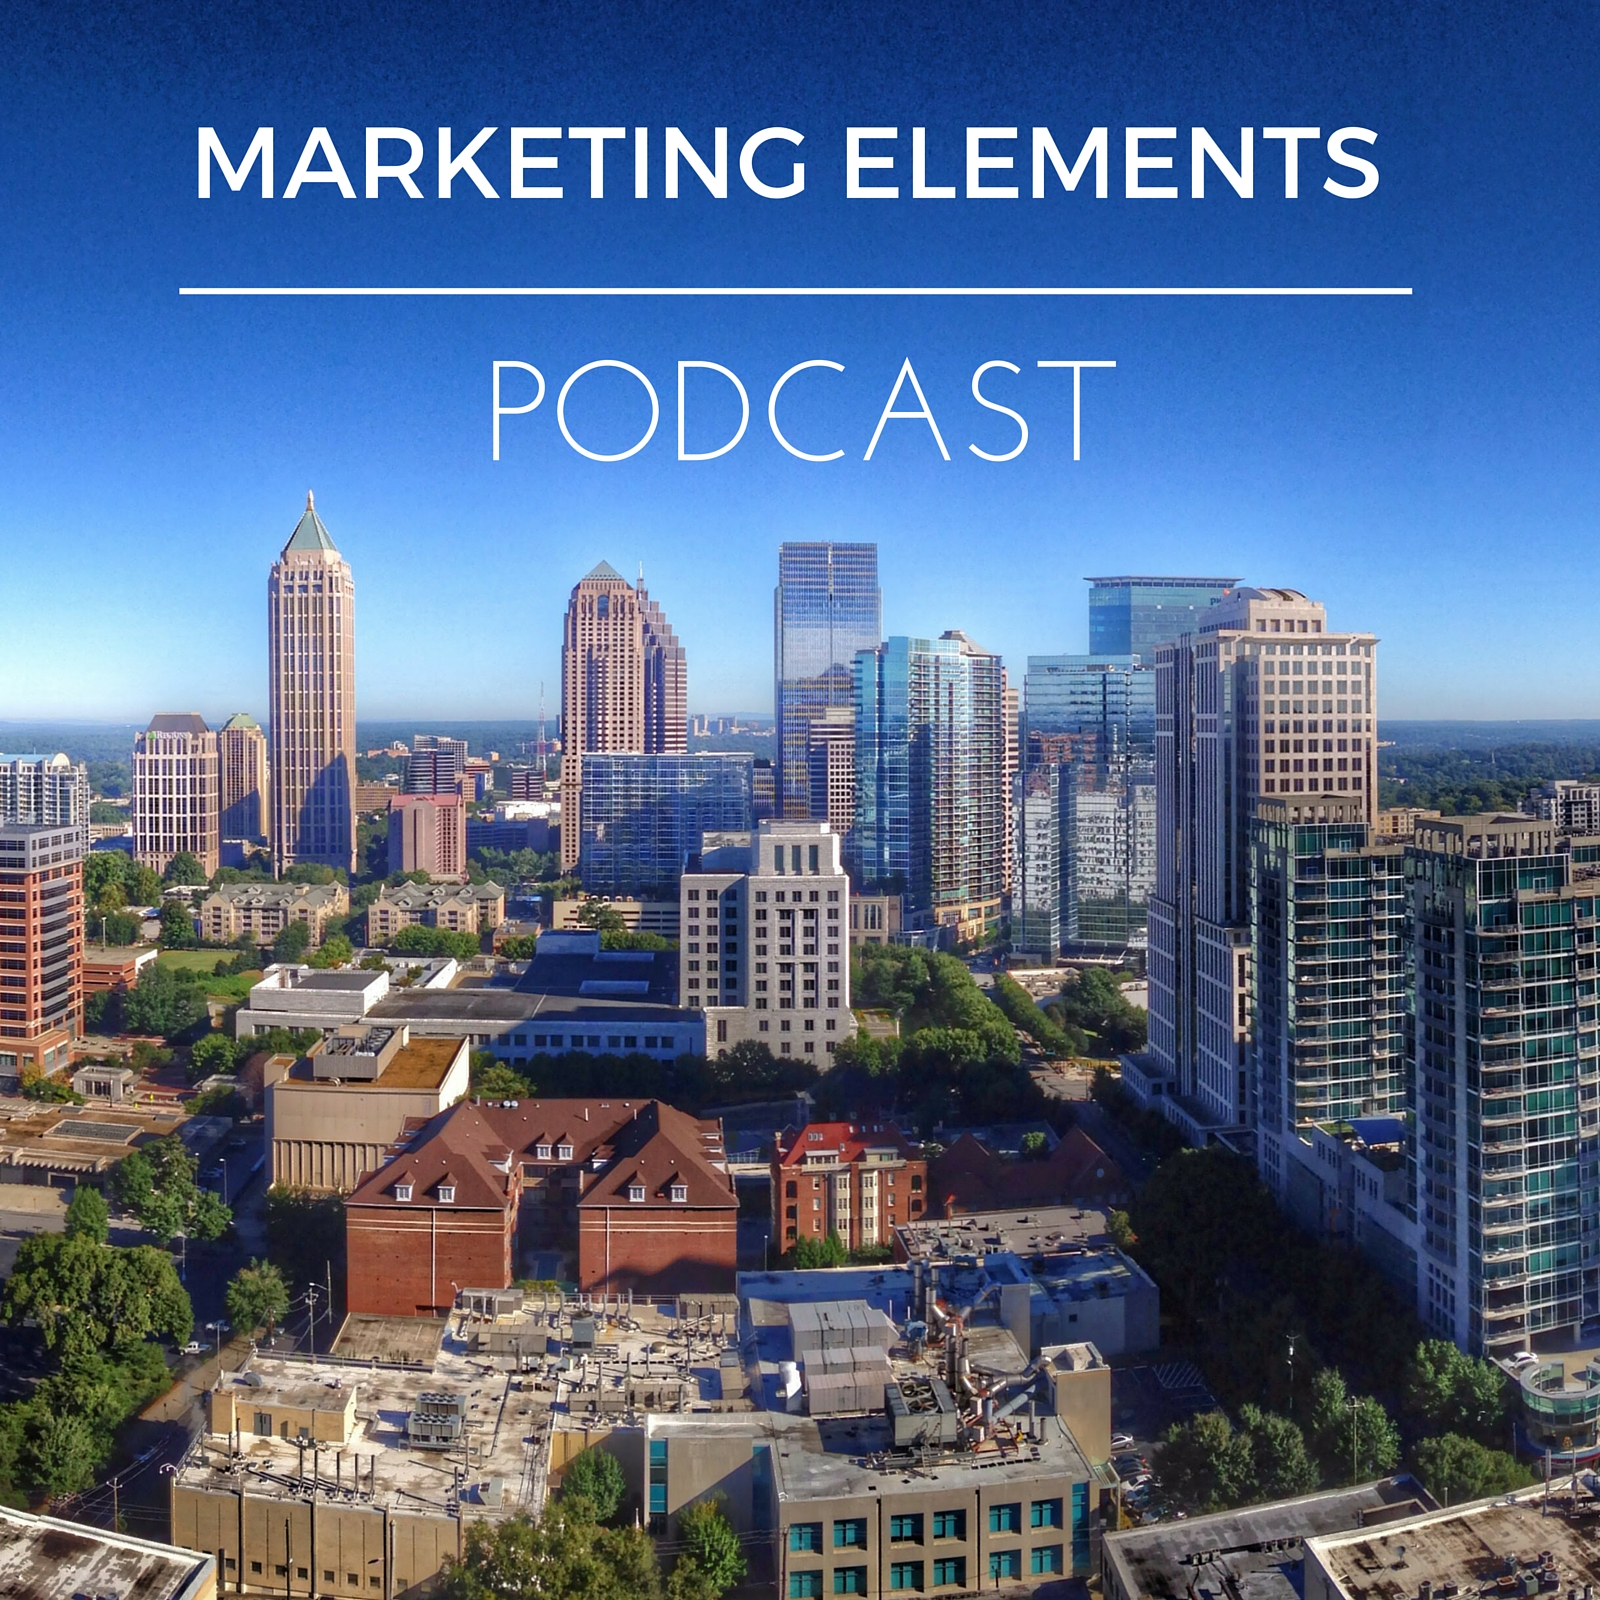 Marketing Elements by Timothy Goleman